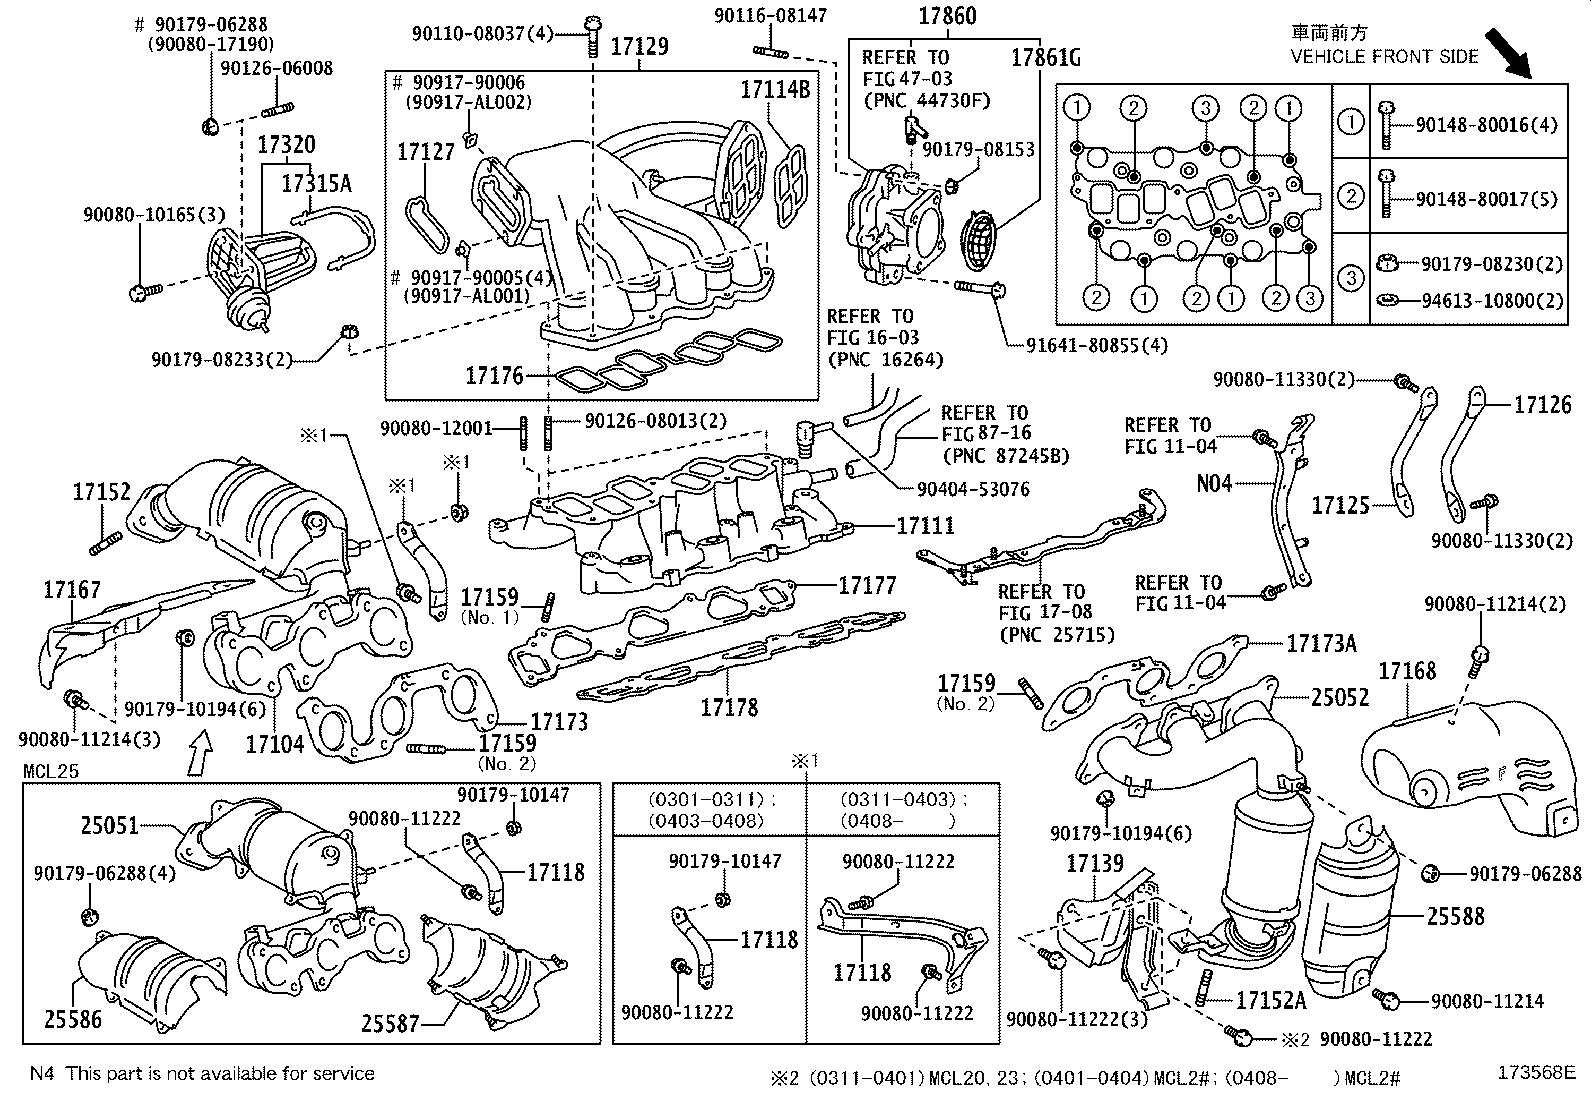 Toyota Sienna Connector assembly, intake air. Exhaust